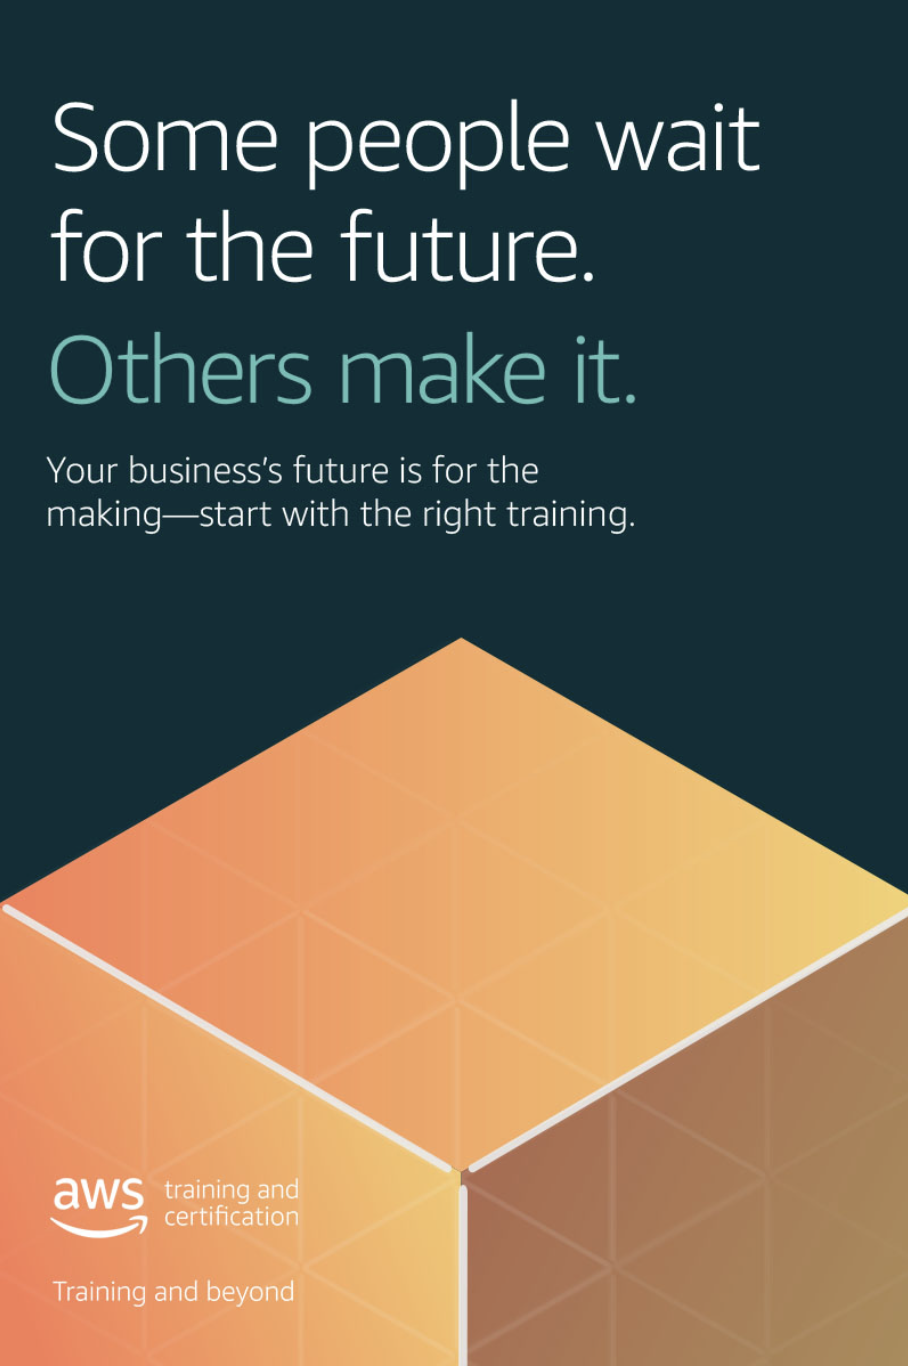 AWS Training and Cert_Global Campaign_B2I ad.png